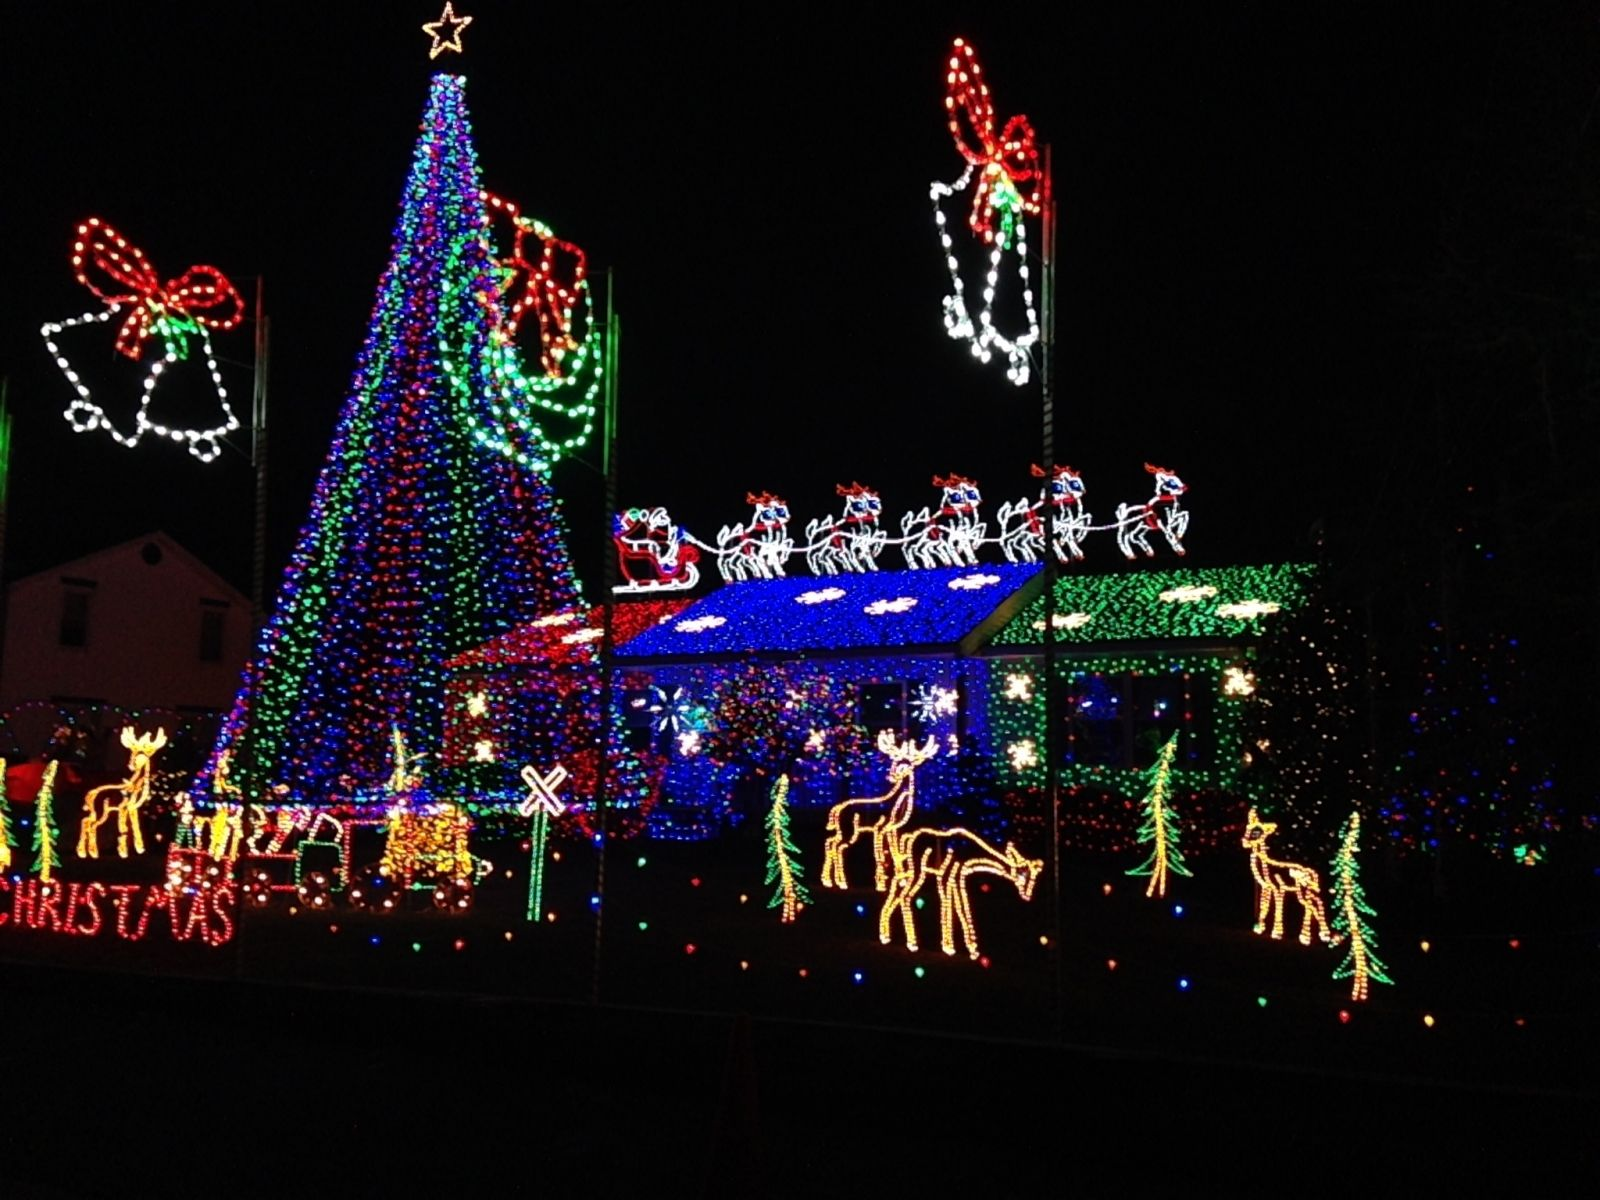 the best free christmas lights in nj - Outdoor Christmas Decorations Nj